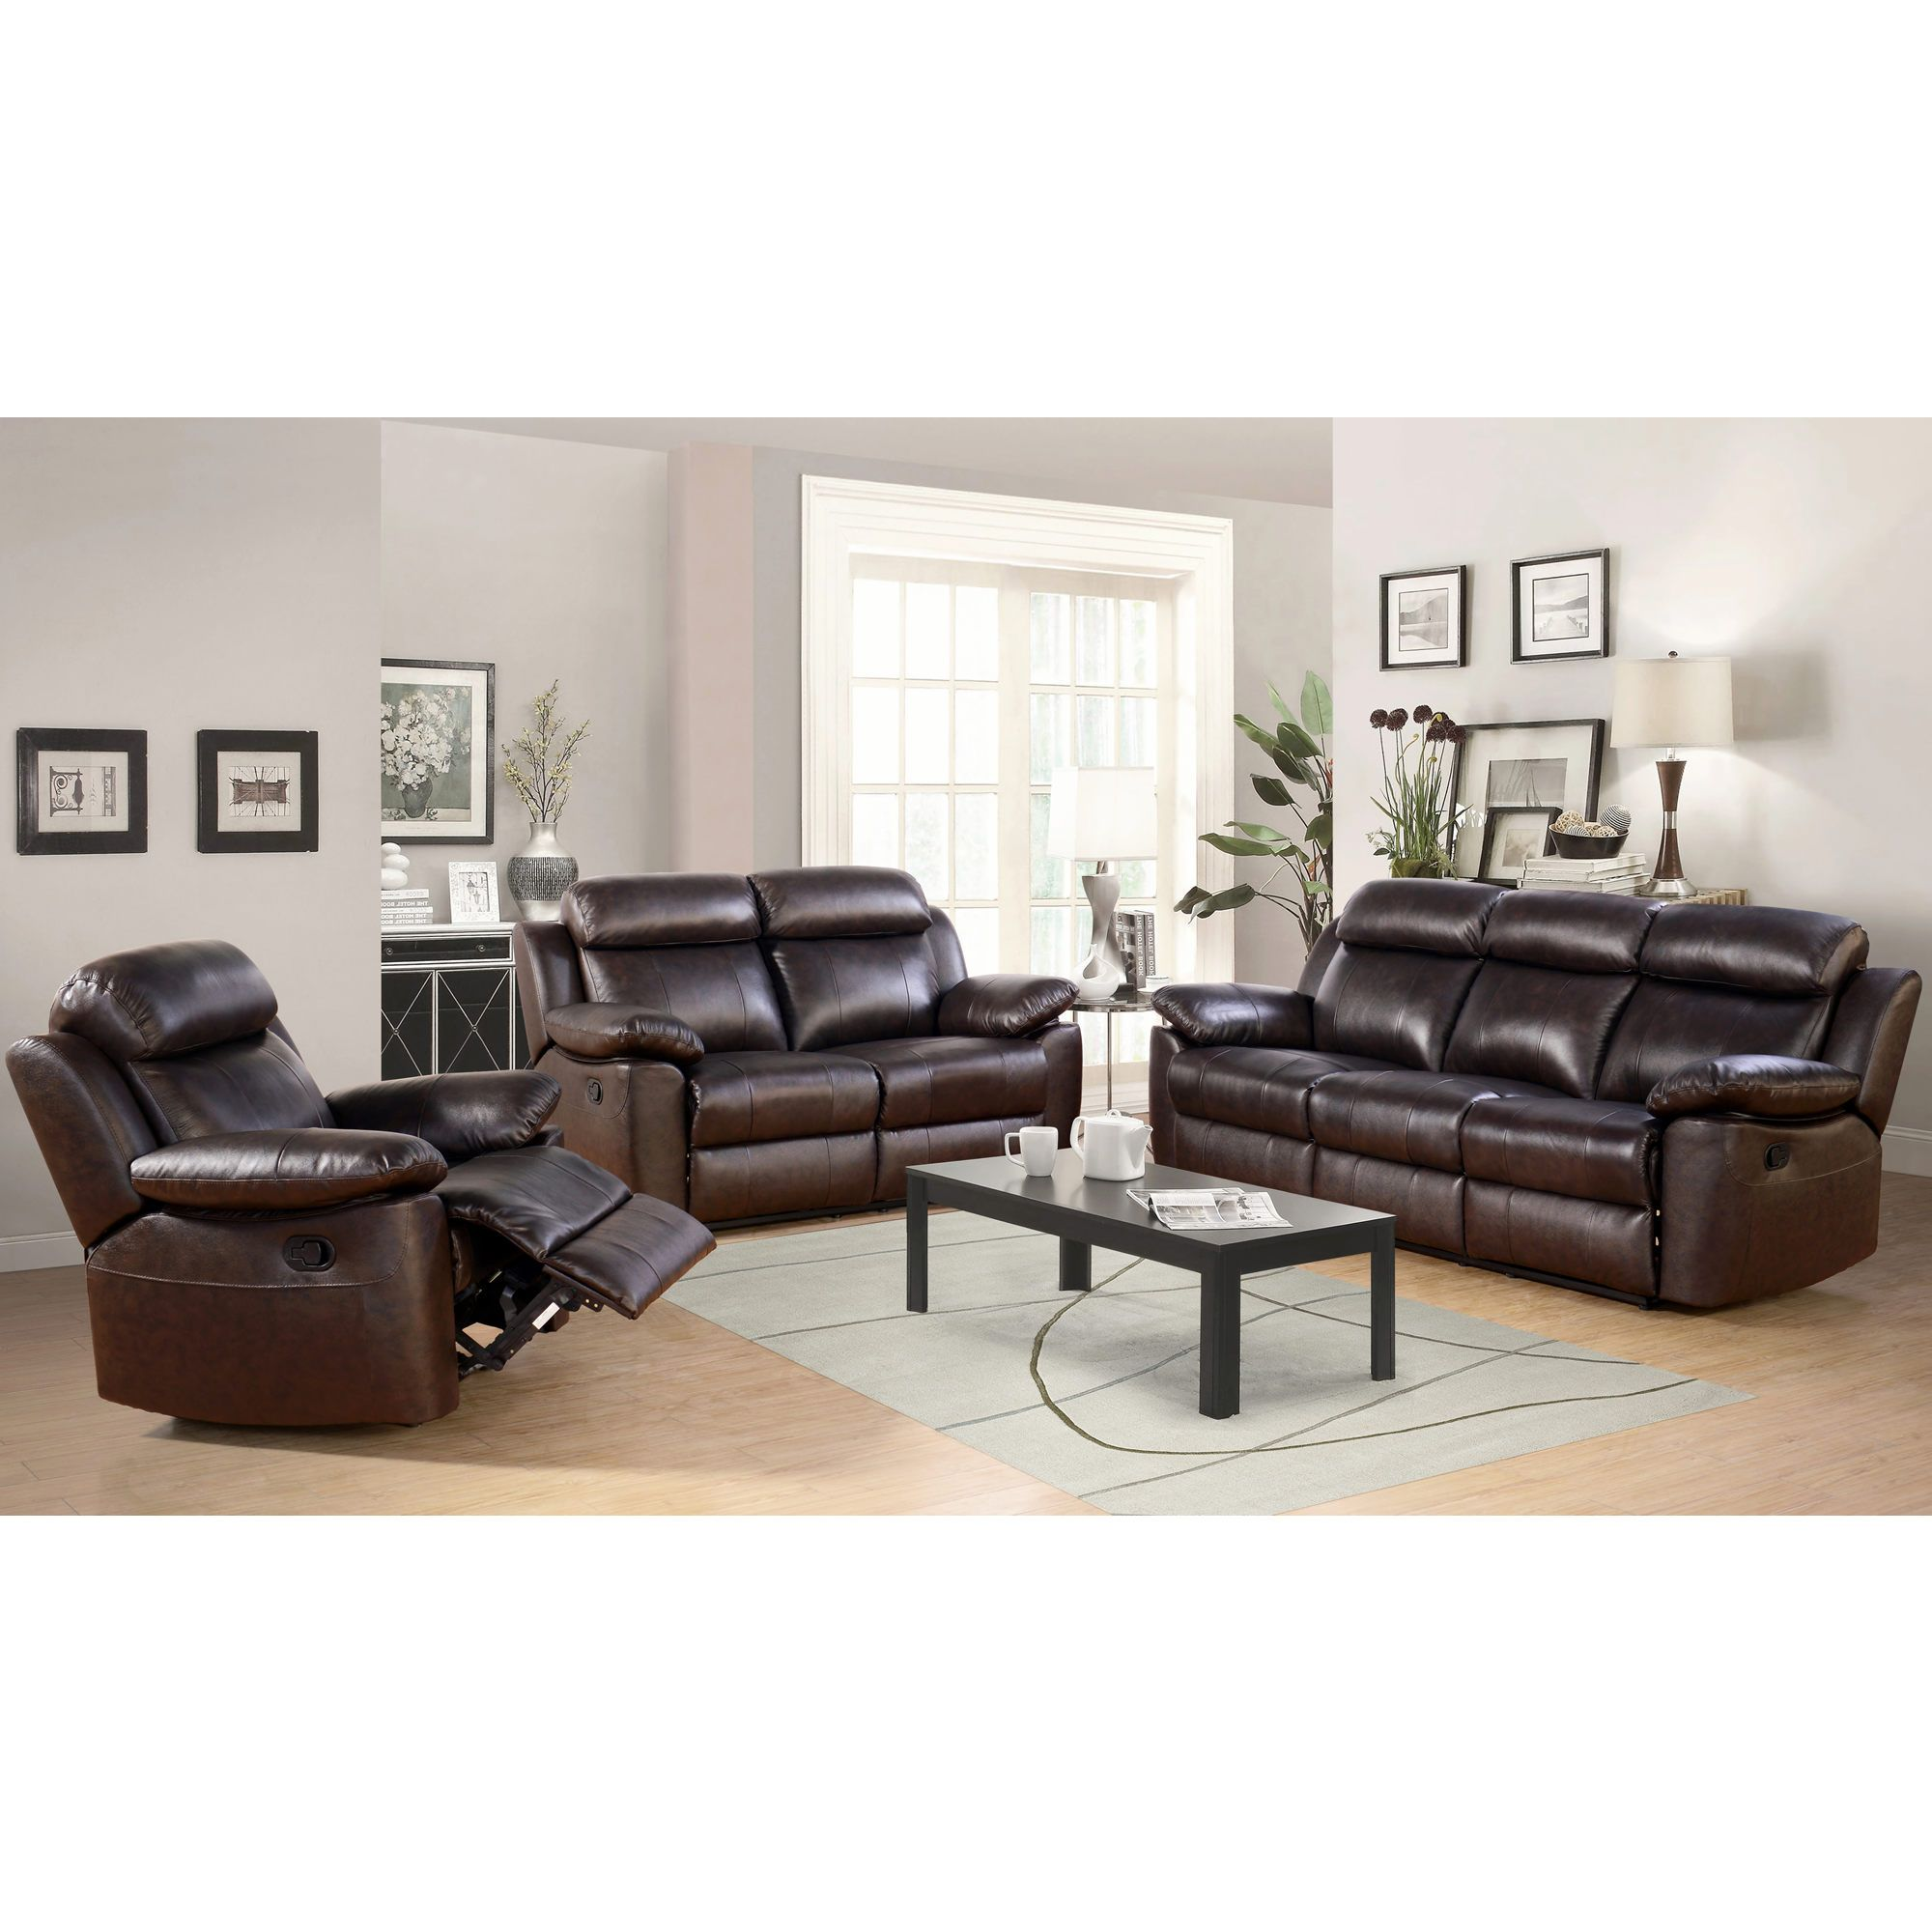 Abbyson Living Braylen 3 Piece Leather Reclining Set Living Room Leather 3 Piece Living Room Set Living Room Sets Furniture